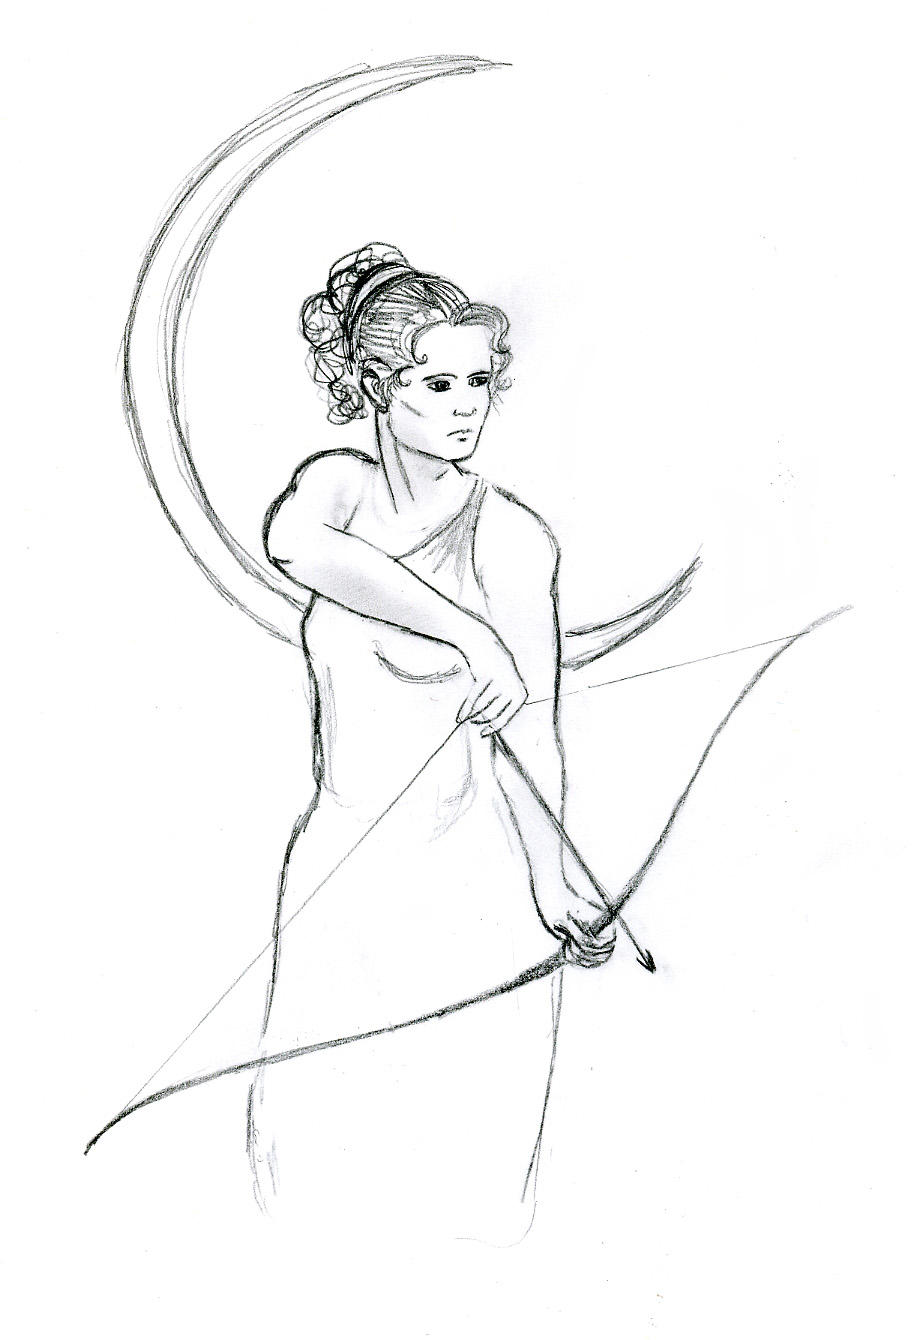 artemis graphite by casteen on deviantart